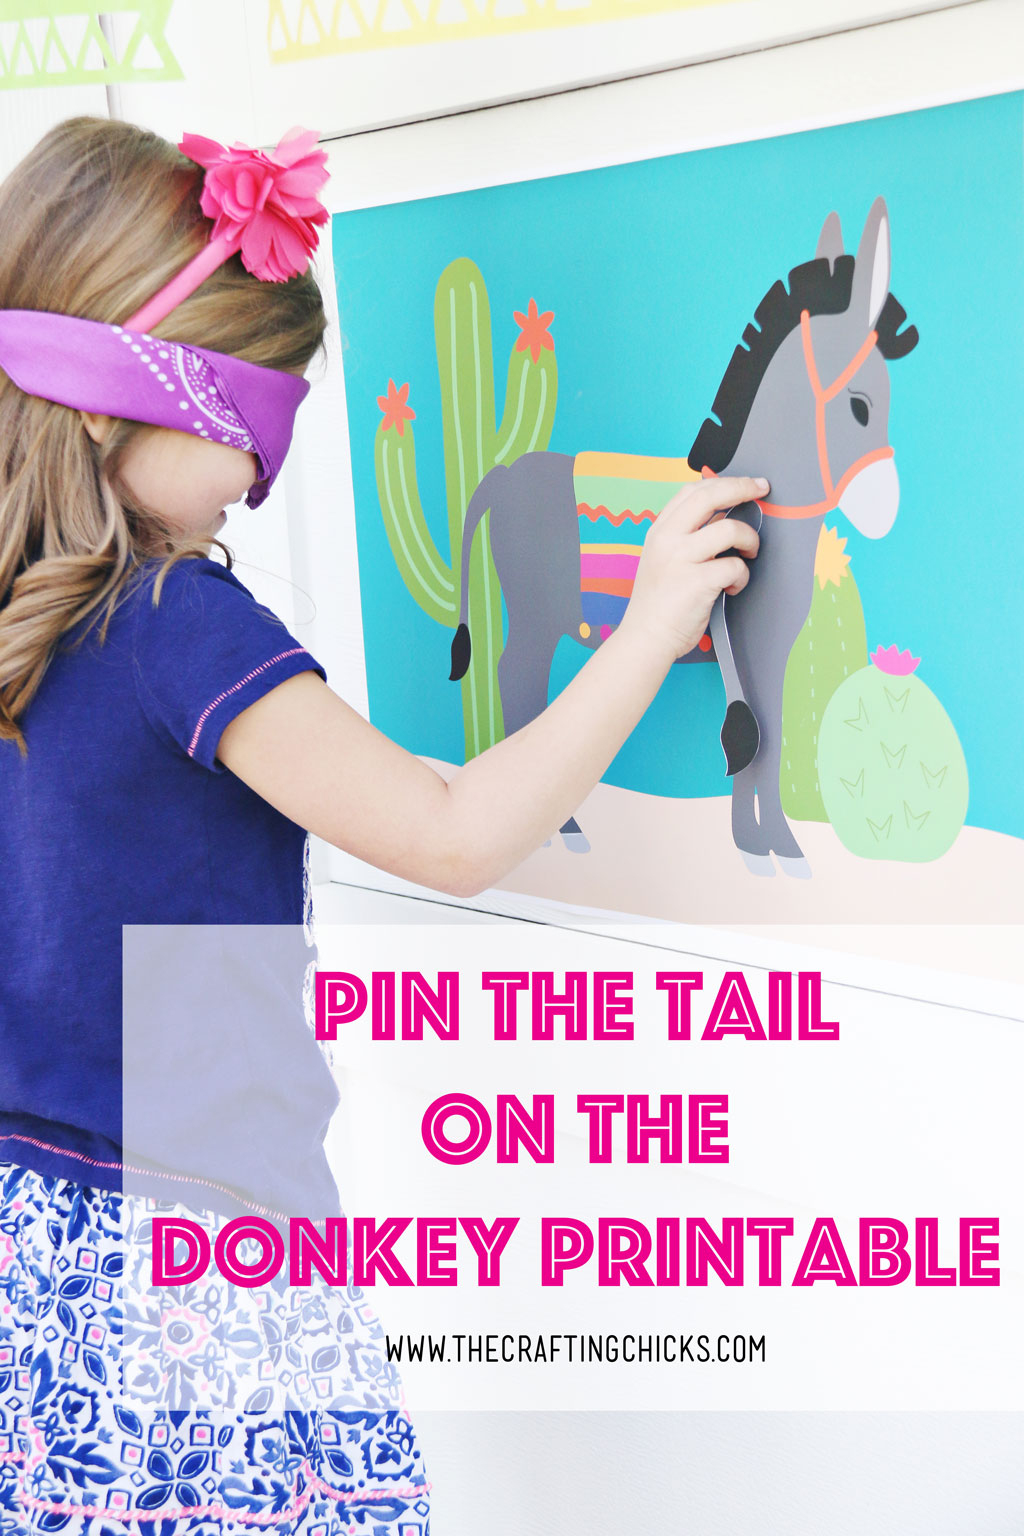 Pin The Tail On The Donkey - The Crafting Chicks - Pin The Tail On The Donkey Printable Free